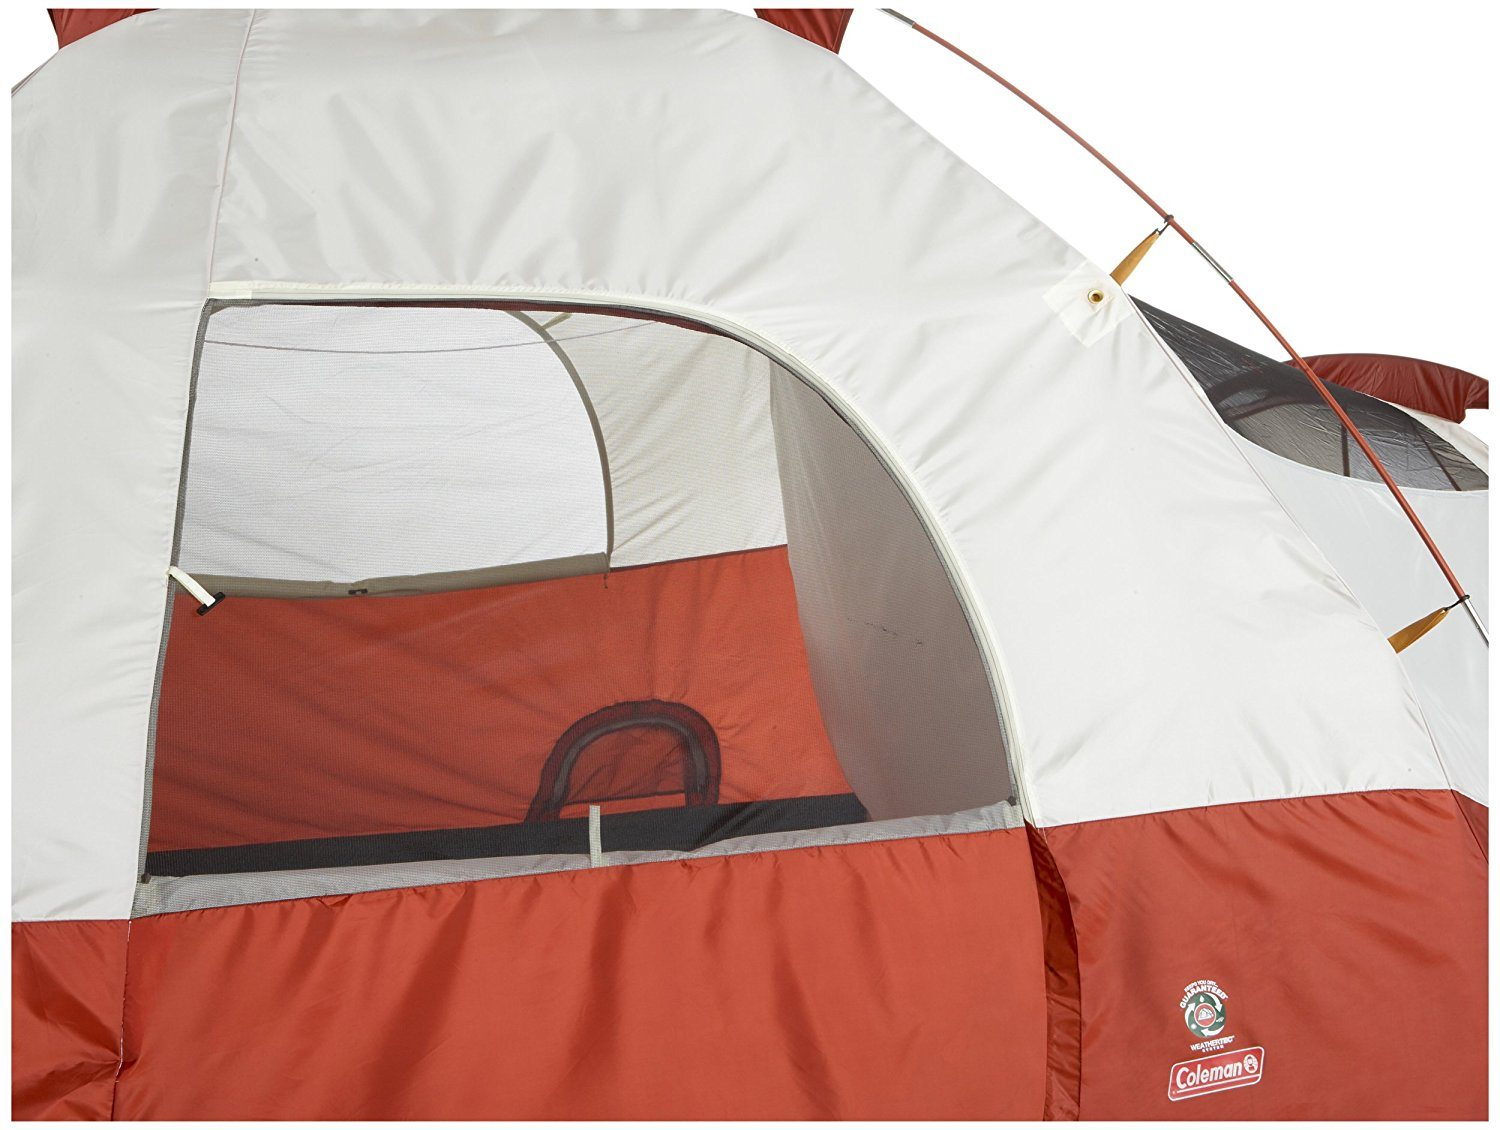 COLEMAN RED CANYON 8 PERSON TENT window